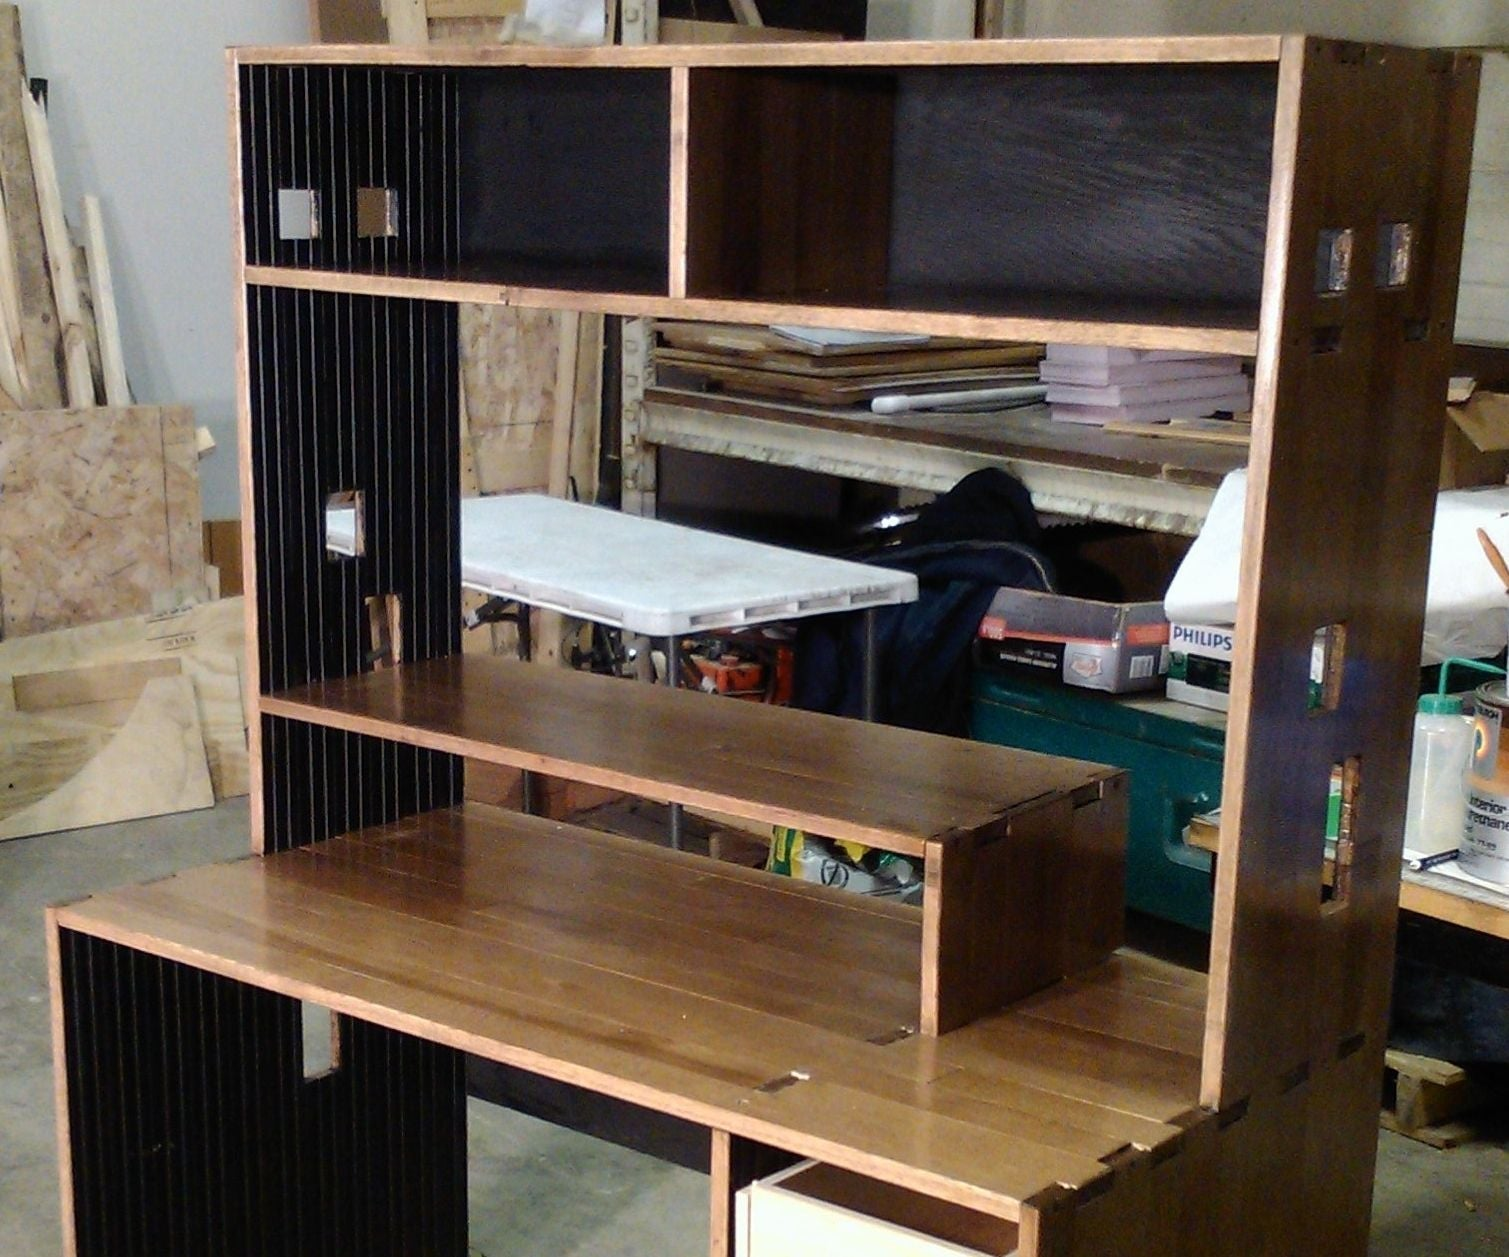 Solid Wood Computer Desk for Only $50 in Material!